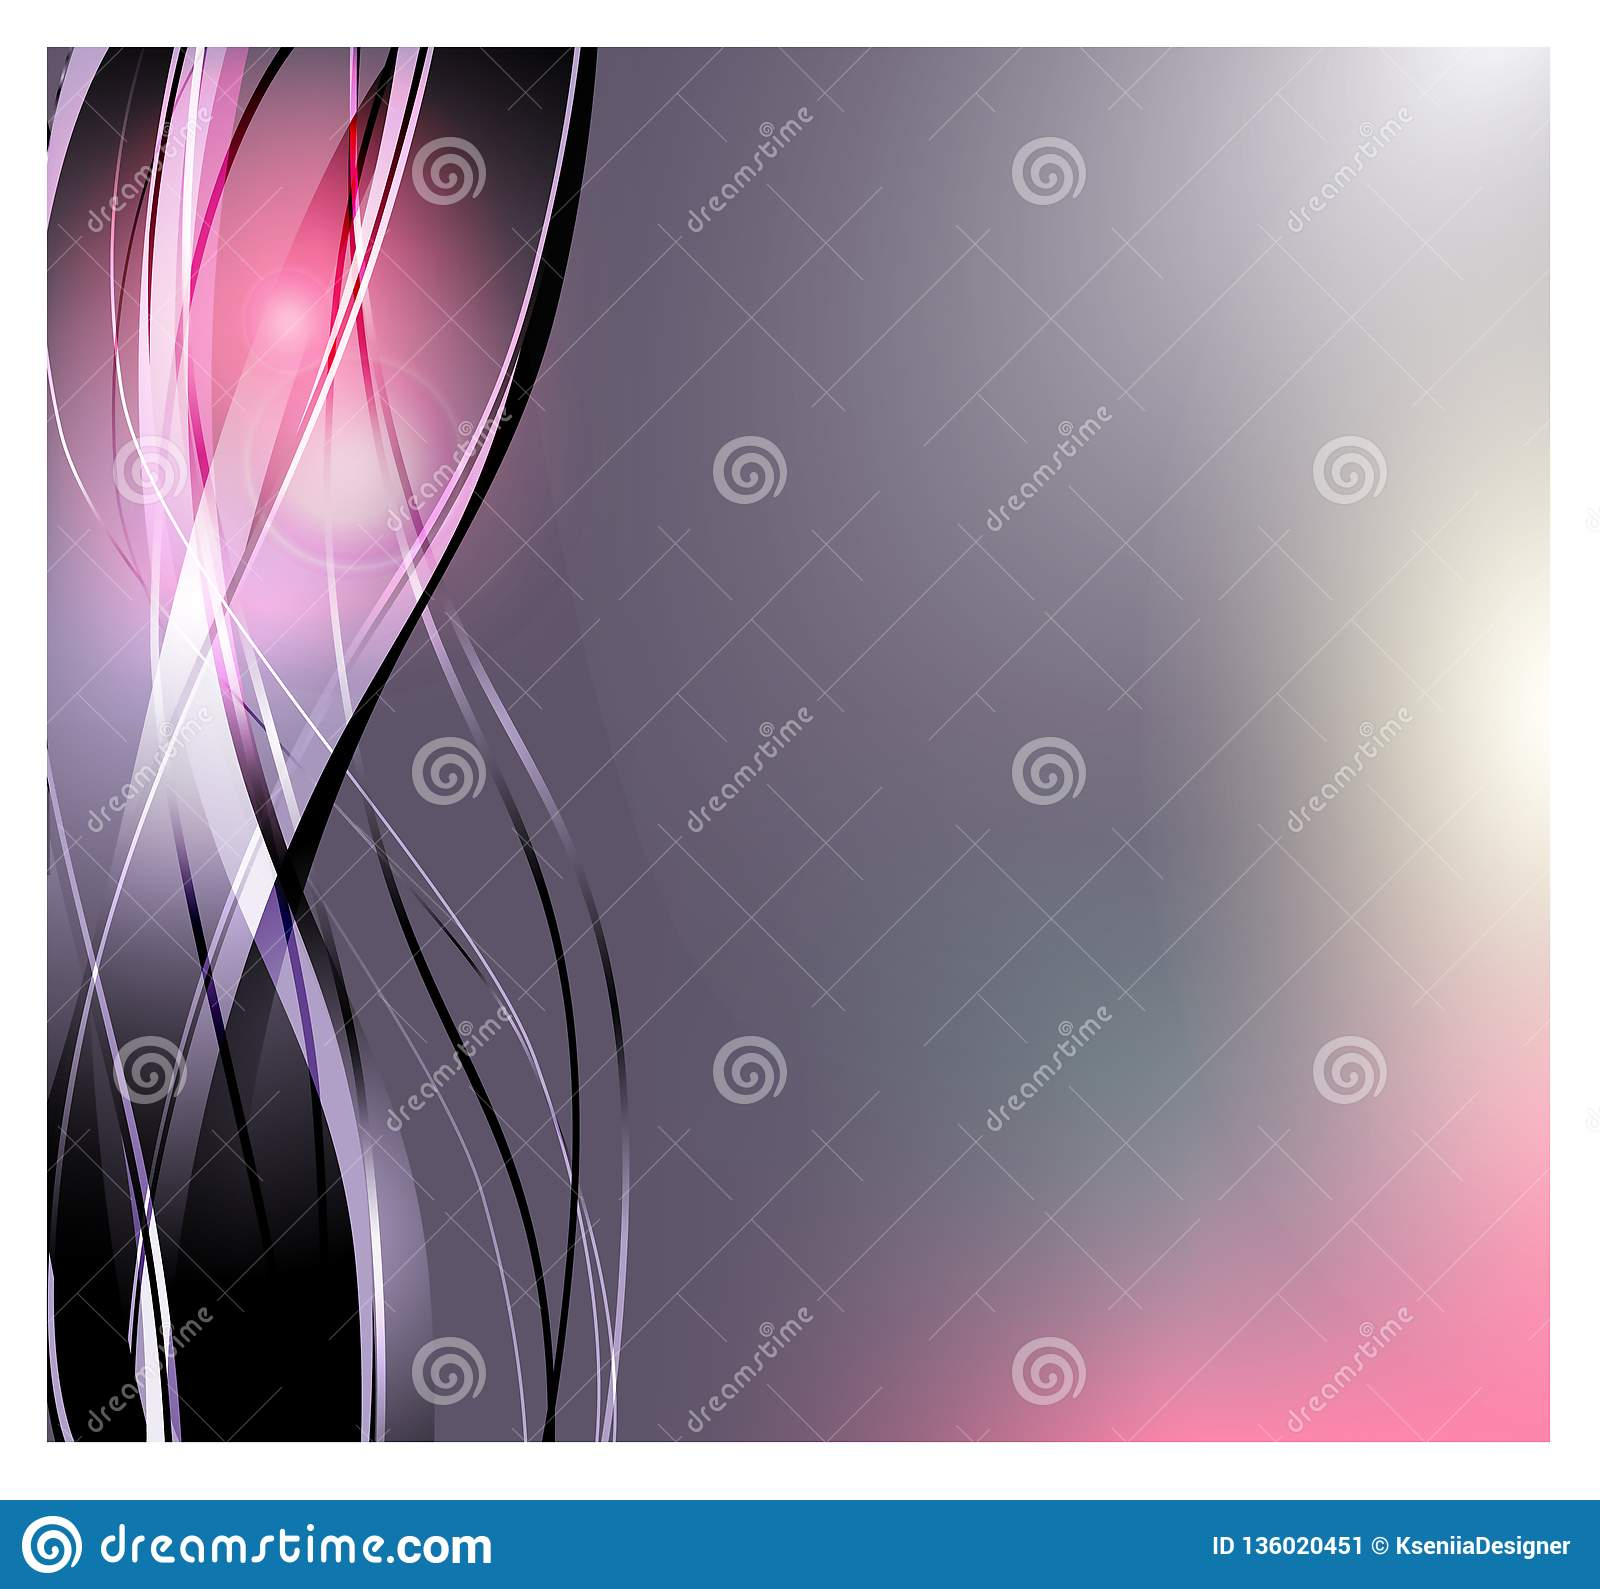 Abstract vector background. Bright curved waves for advertising. Glowing lines